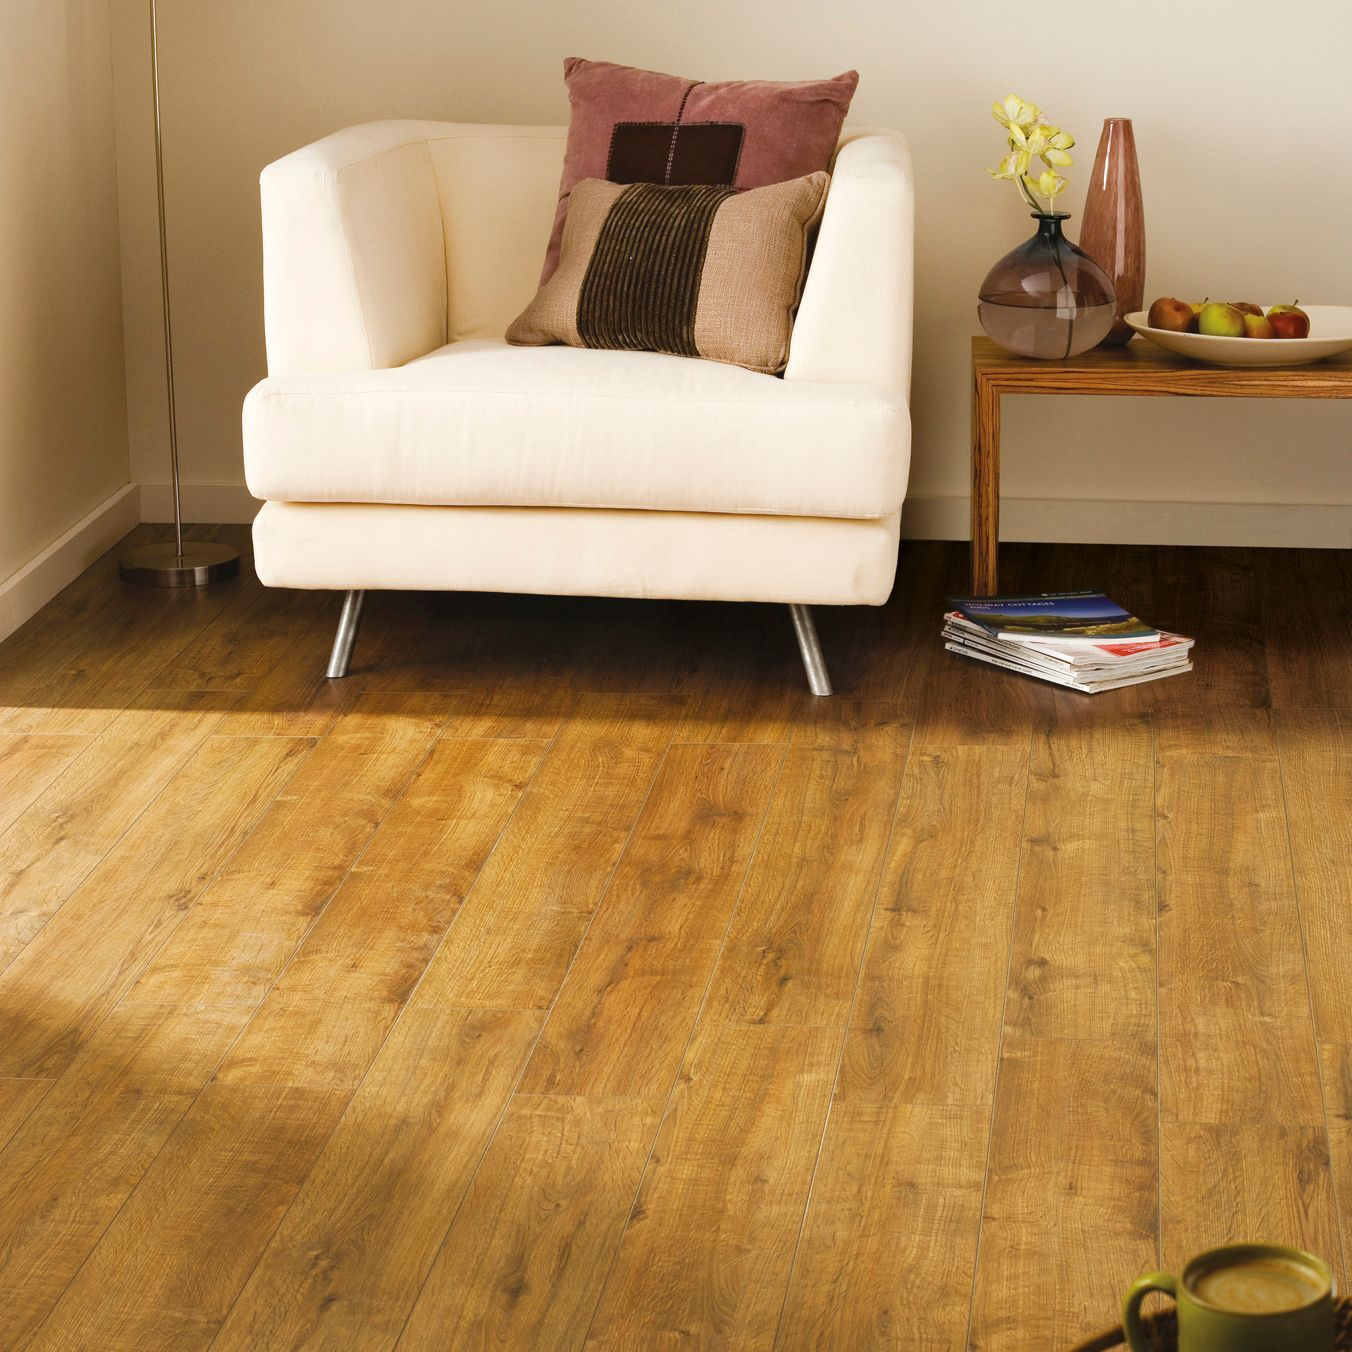 Concertino Kolberg Oak Effect Laminate Flooring 1 48 M² Pack Departments Diy At B Q